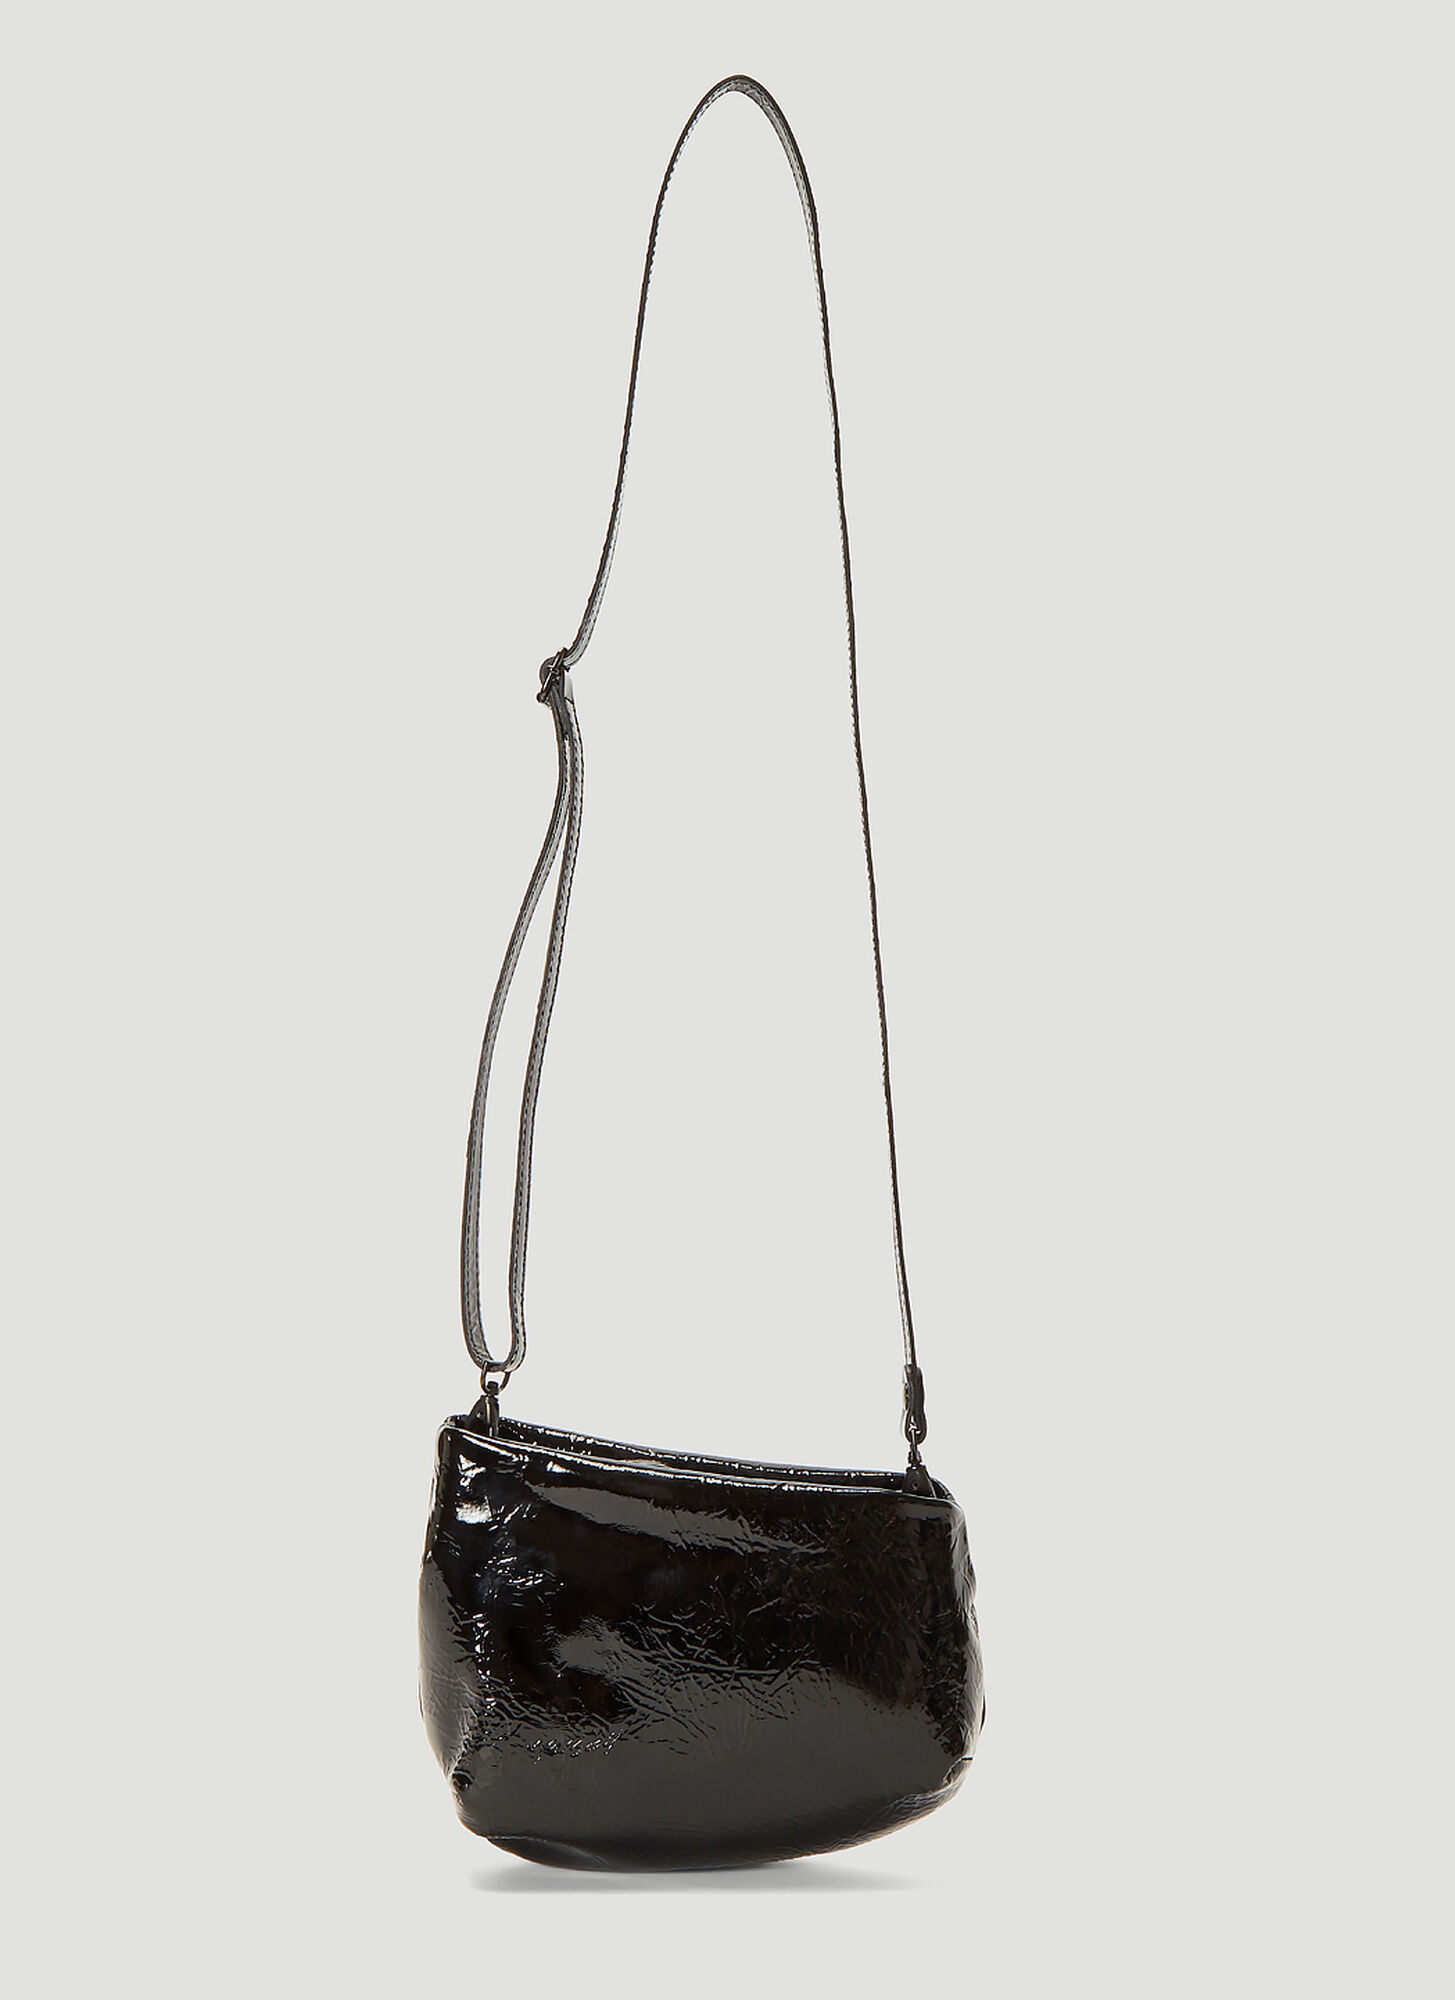 Marsell Fantasmino Handbag in Black